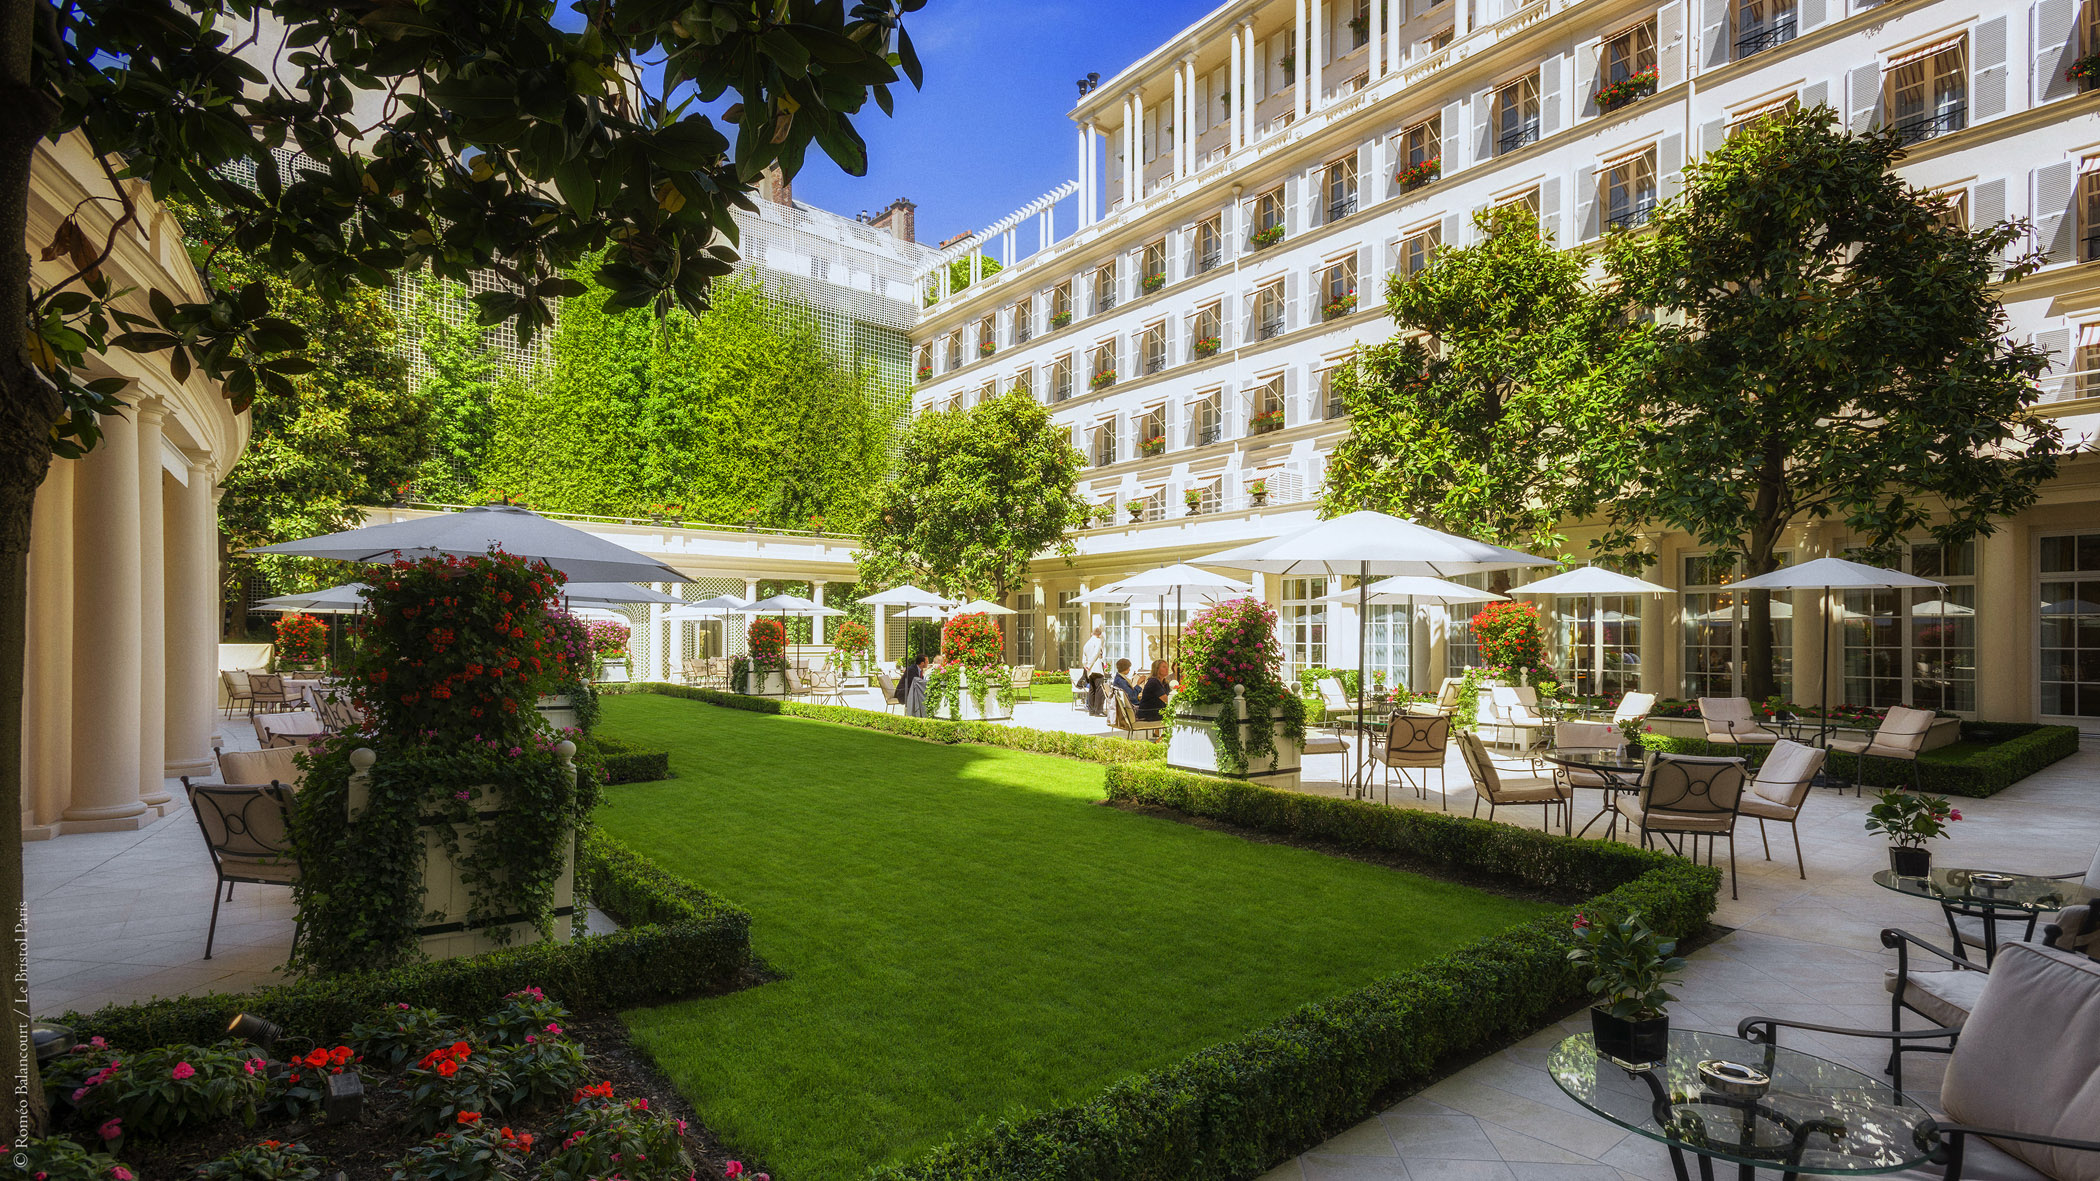 Le bristol paris class 1er h tel de france aux world s for Les jardins hotel paris